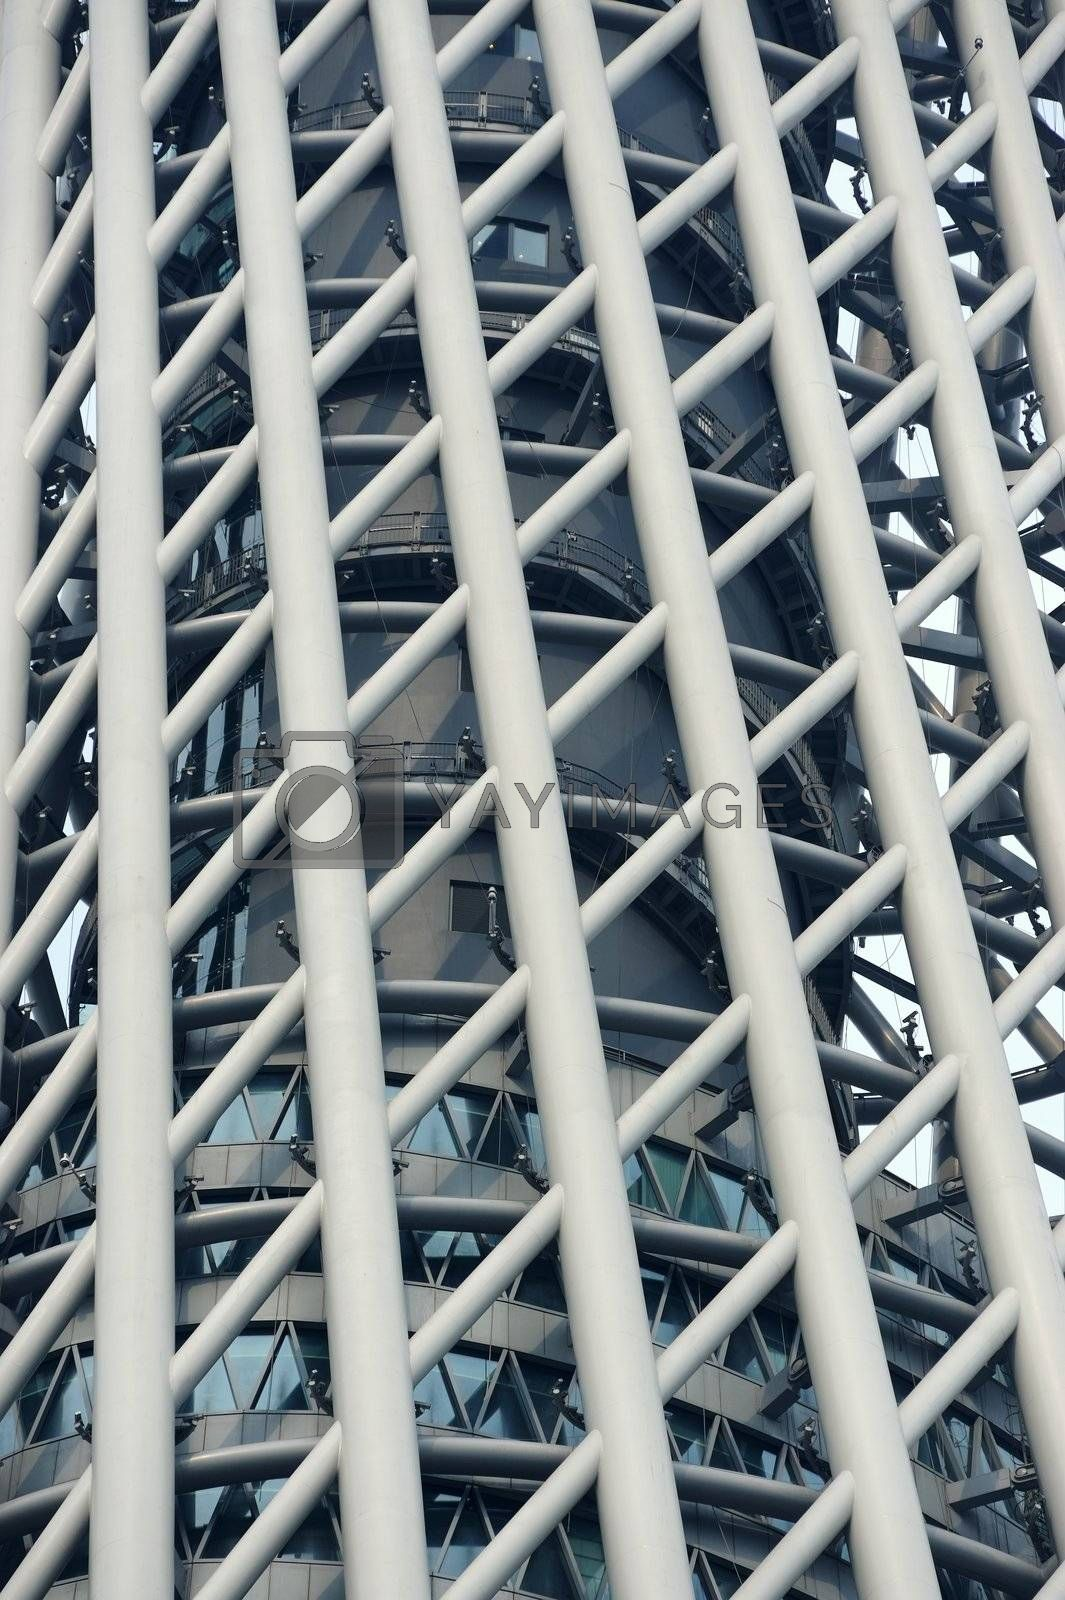 Modern architecture close up view